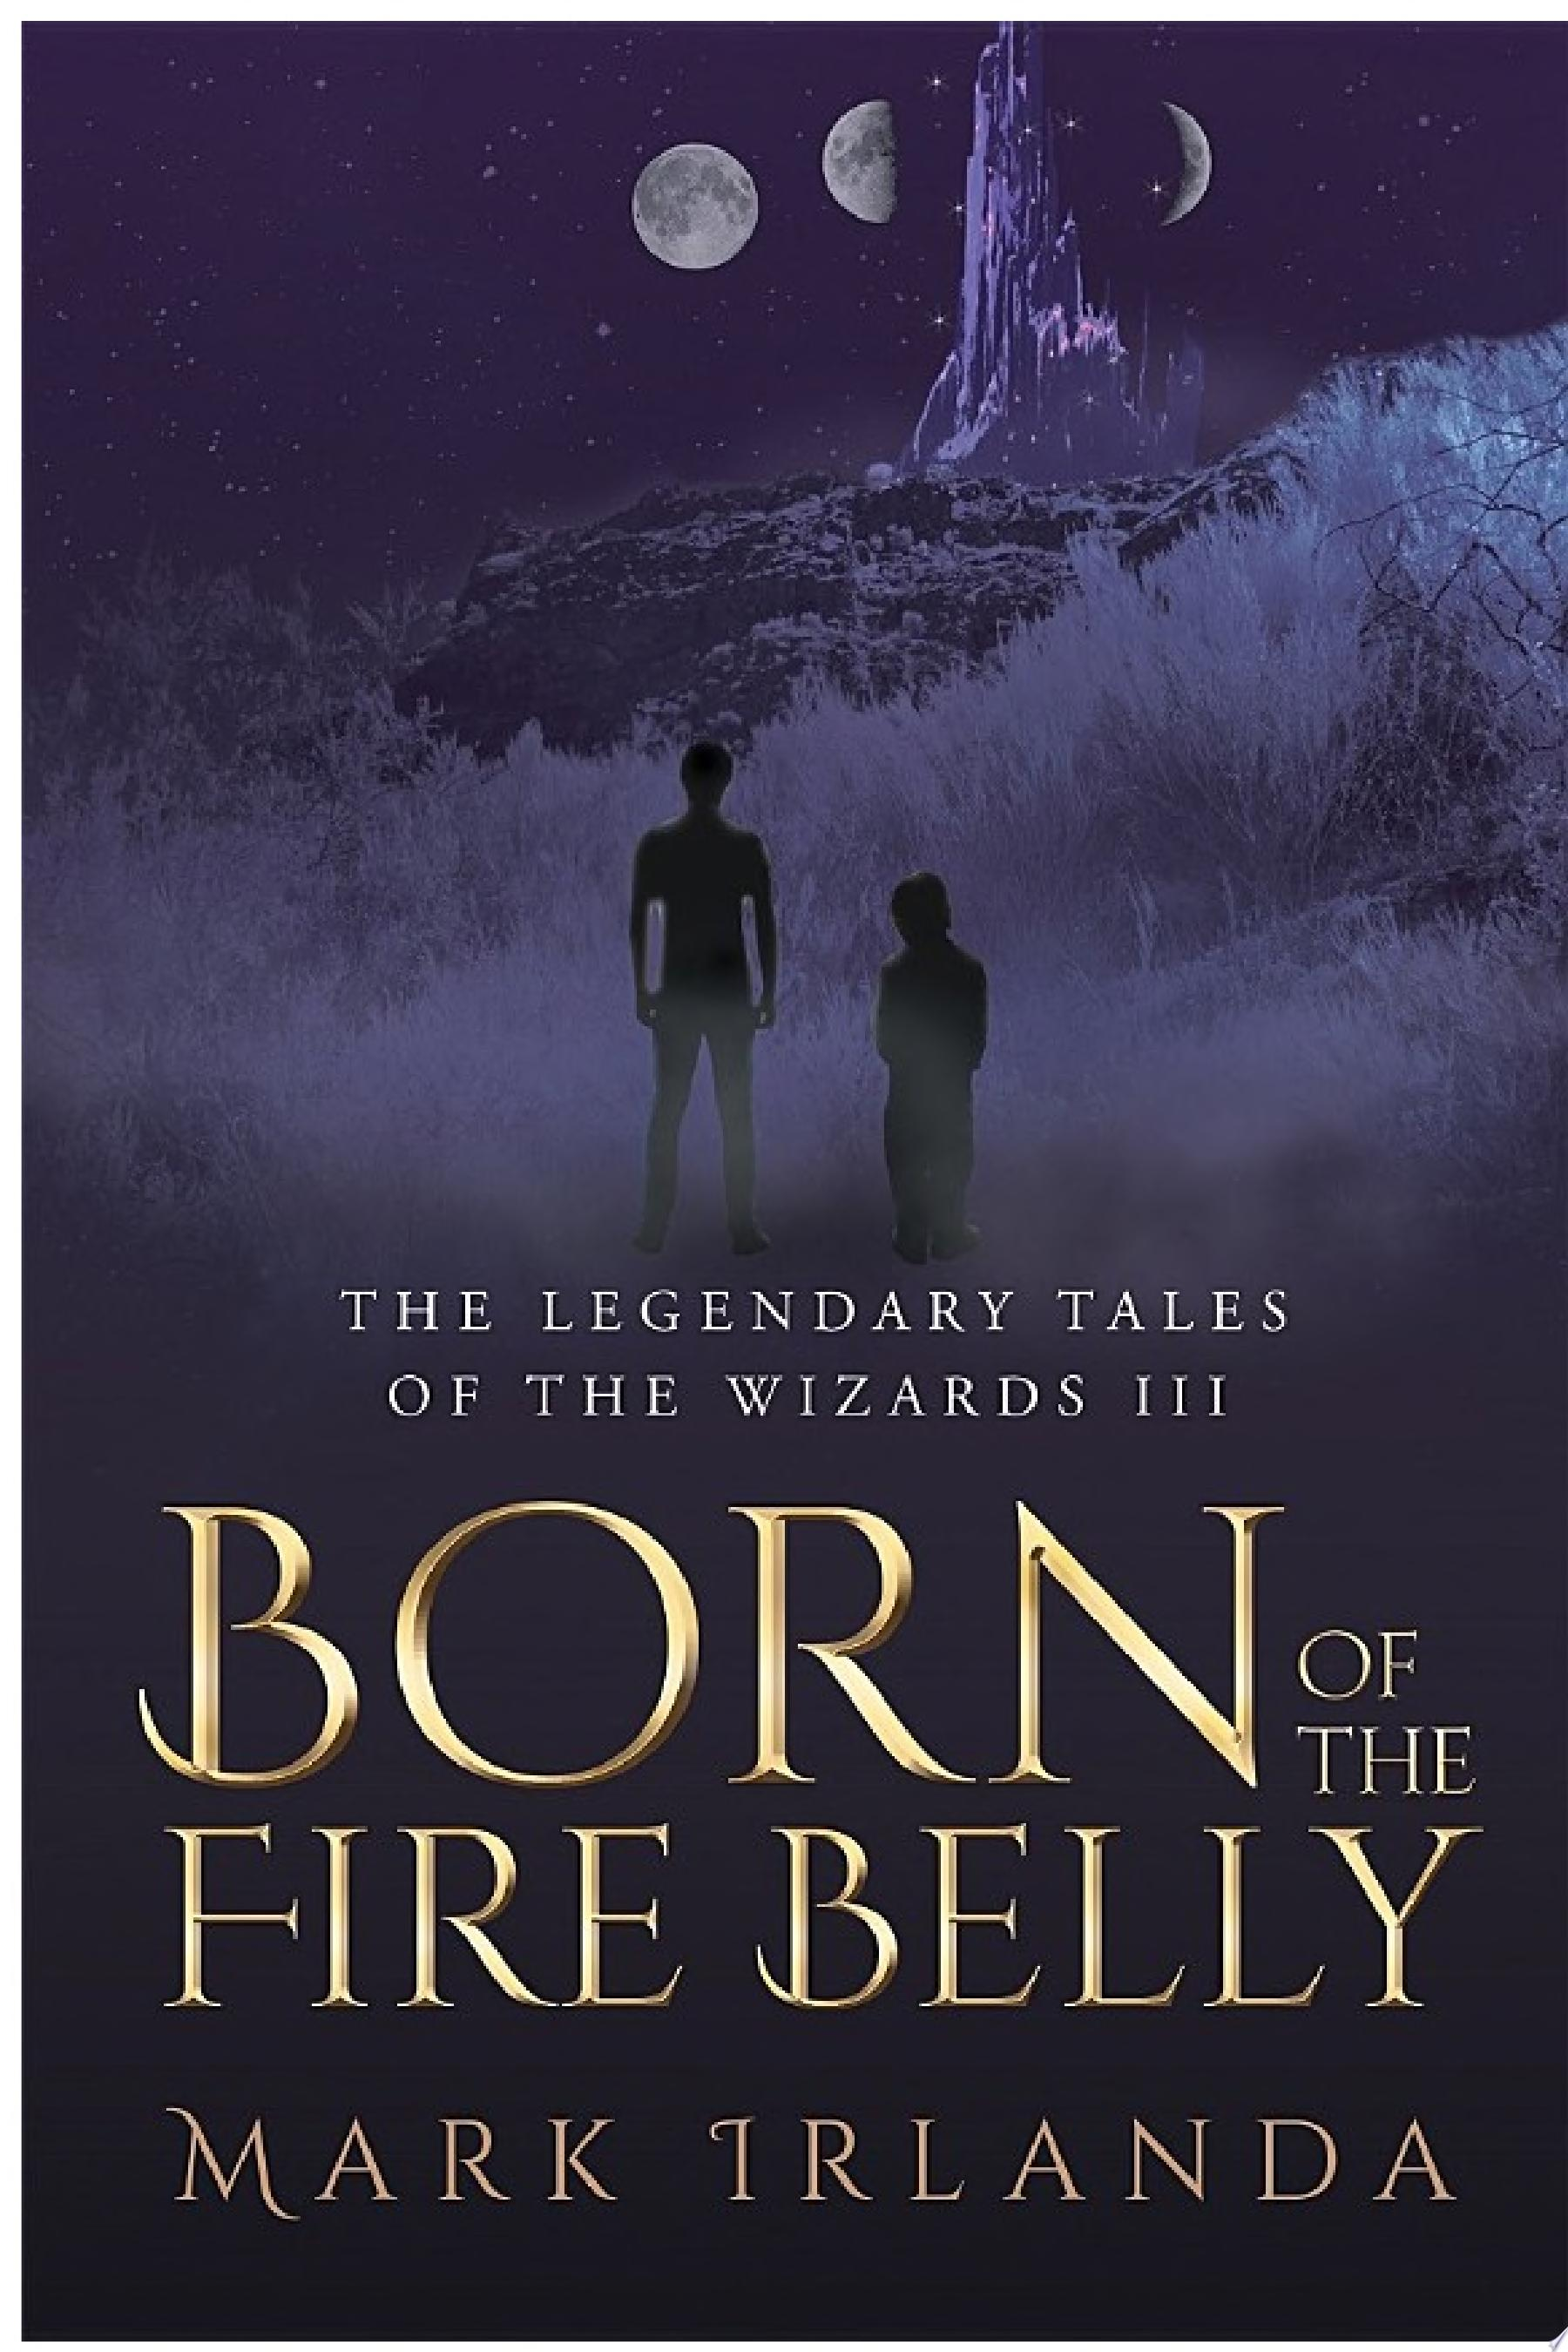 The Legendary Tales of the Wizard III  Born of the Fire Belly